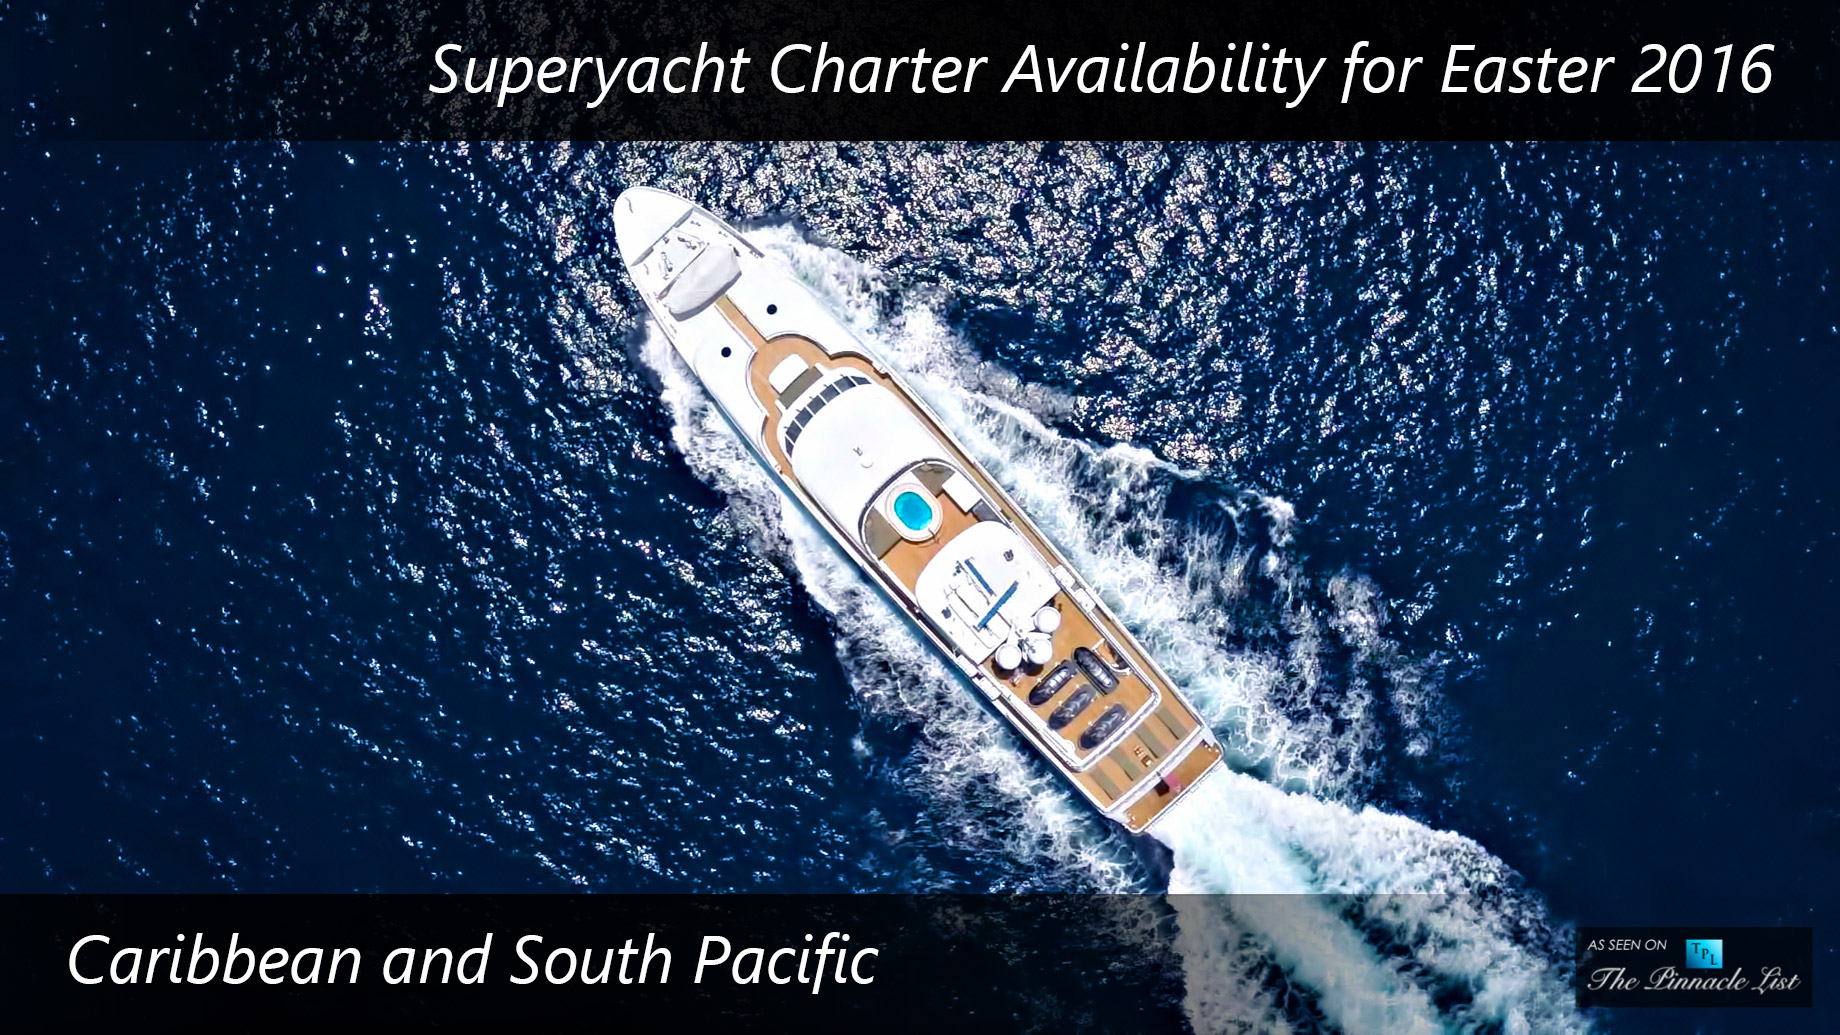 Superyacht Charter Availability for Easter 2016 - Caribbean and South Pacific